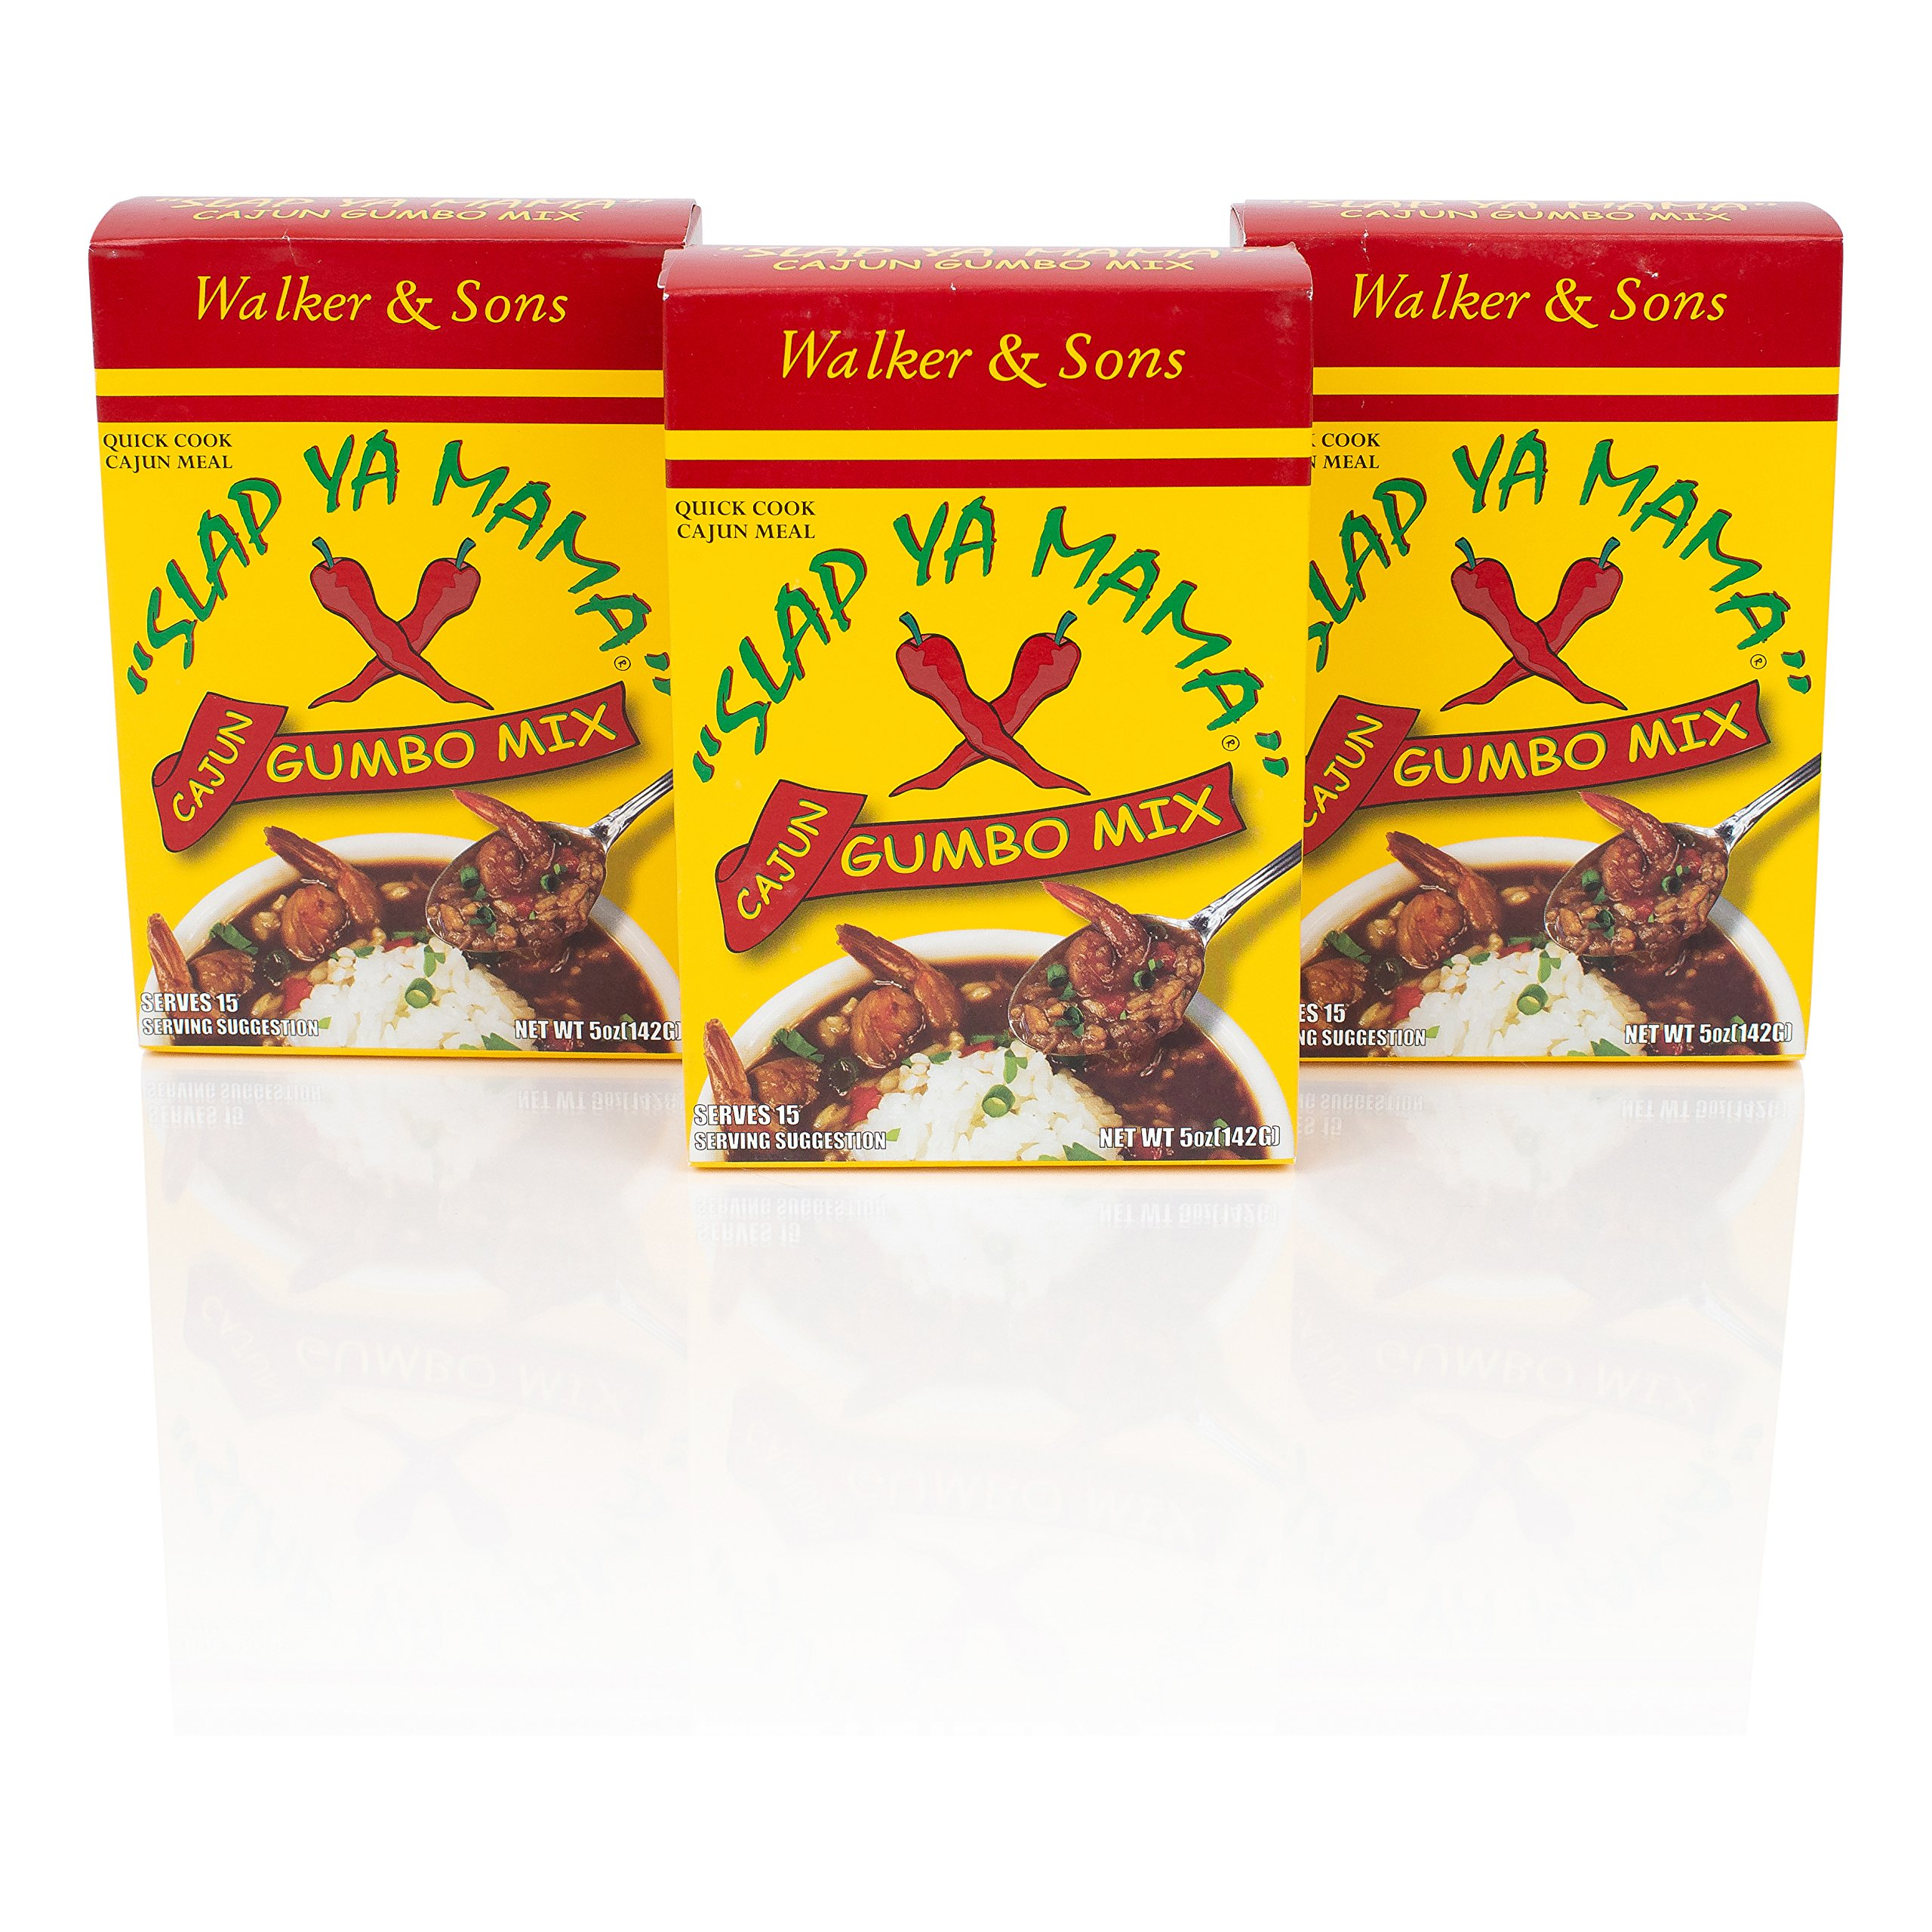 Slap Ya Mama Louisiana Style Gumbo Dinner Mix, Quick and Easy Cajun Meal, 8 Ounce Box, Pack of 3